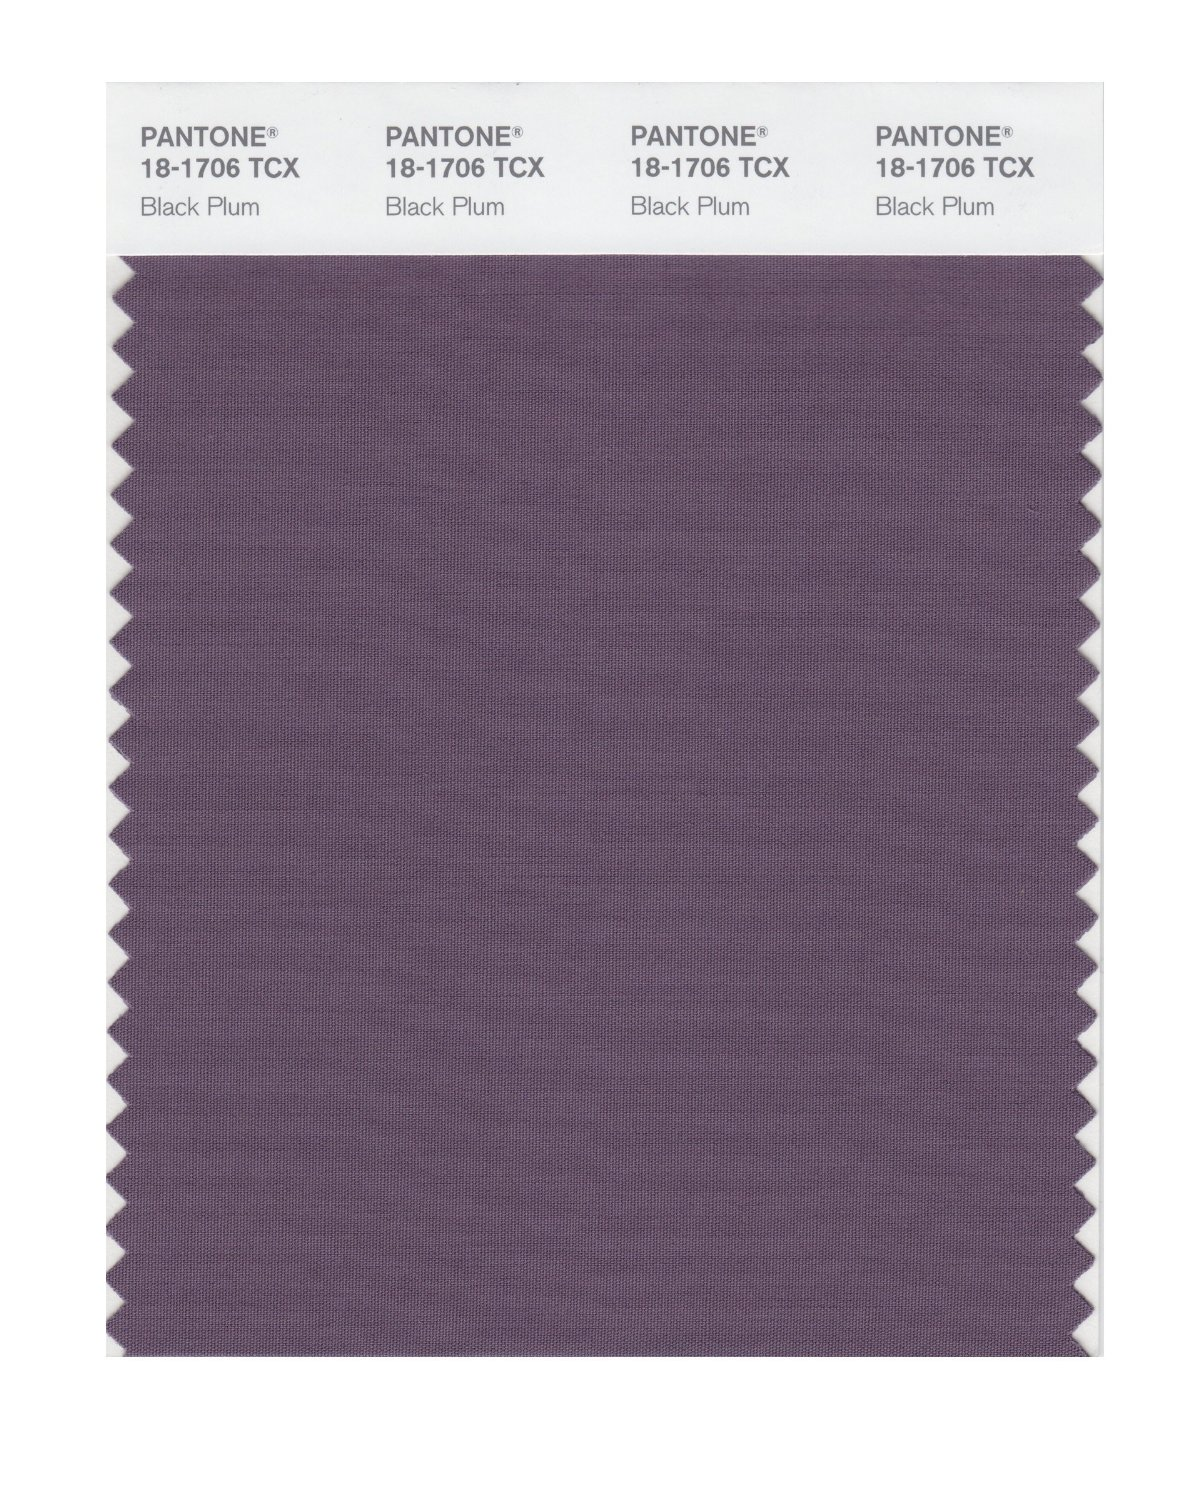 Pantone Smart Swatch 18-1706 Black Plum